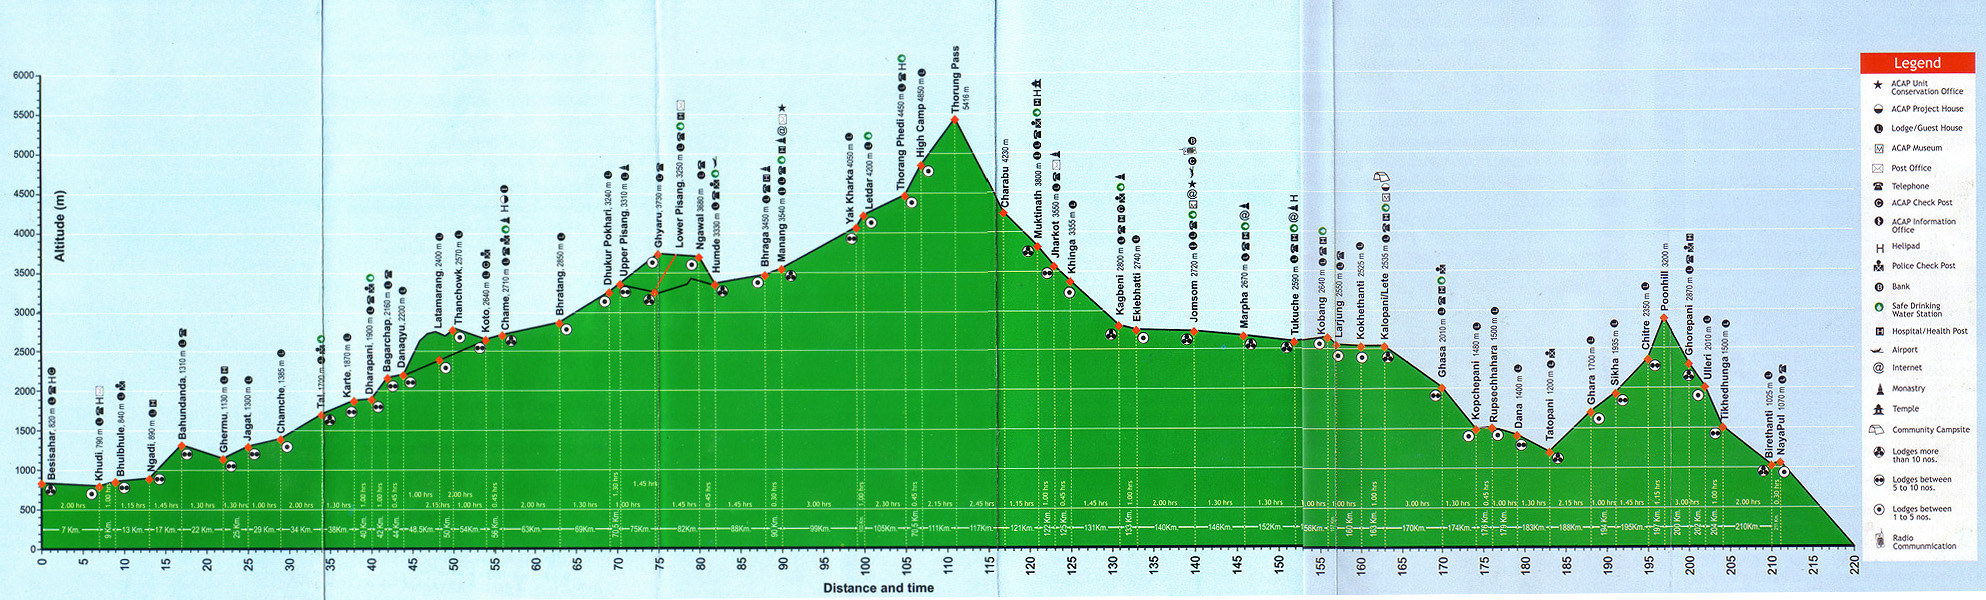 annapurna circuit elevation.jpg